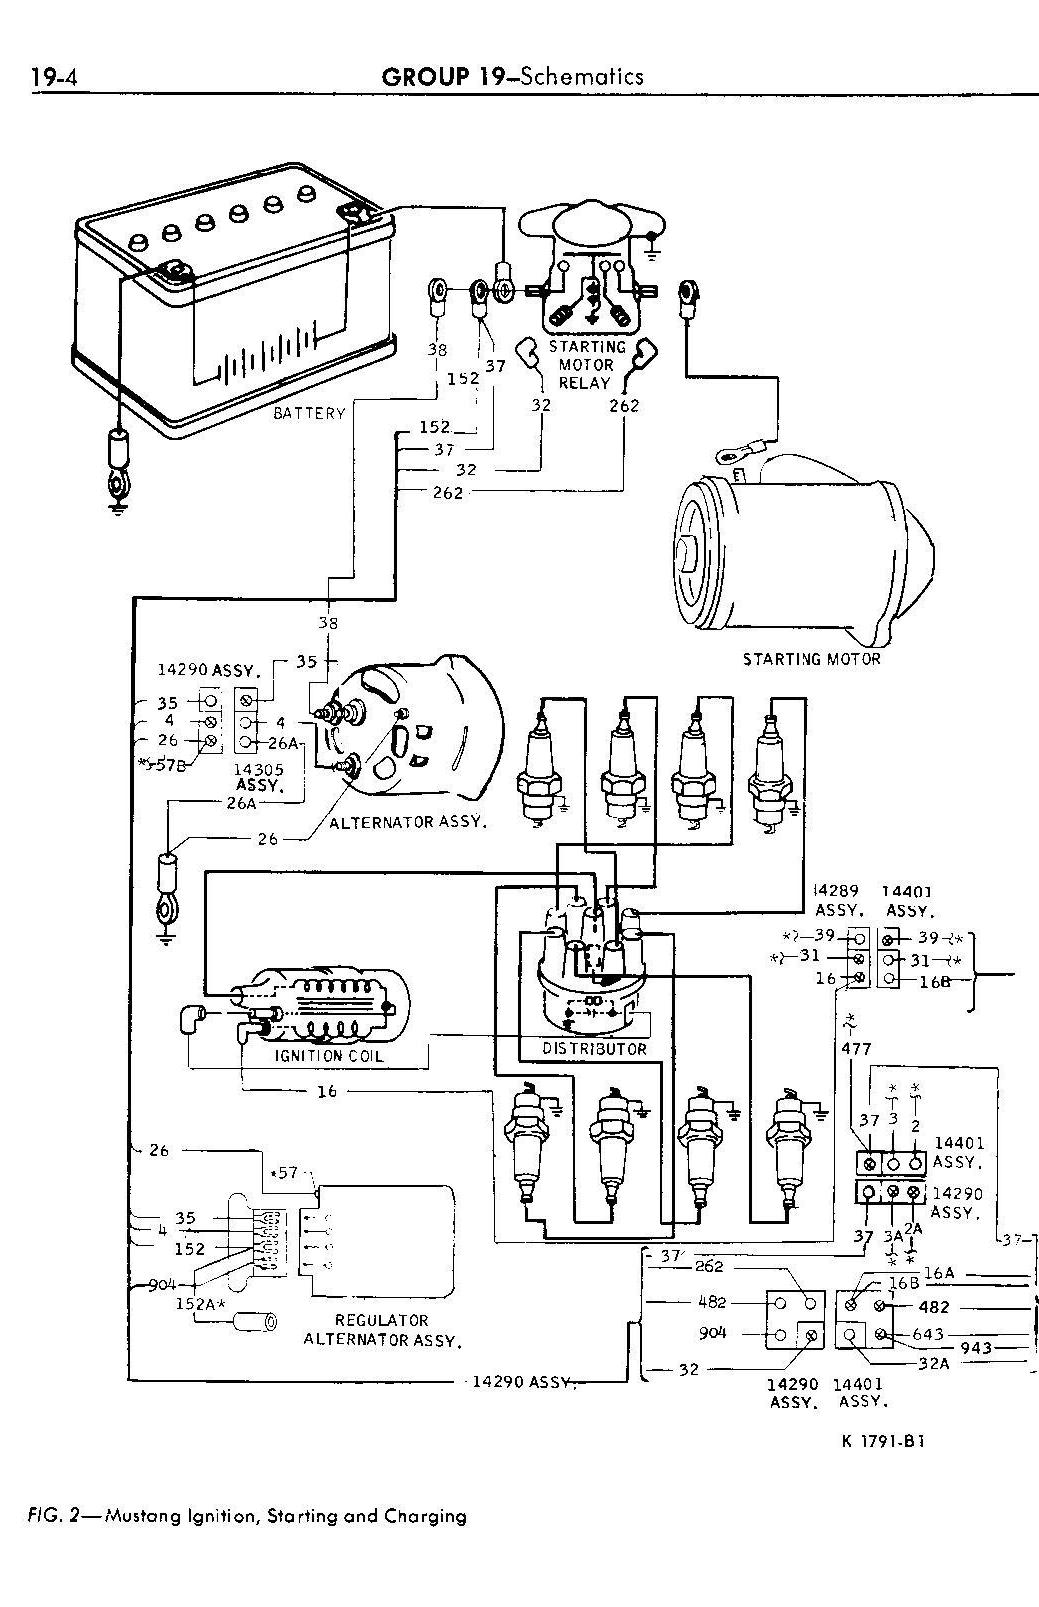 1ams3 95 F 150 Replace Air Condition  pressor Along furthermore 71o6i Ford Ranger Super Cab 4x2 Changing Water Pump additionally 3gc84 F150 Lariat Air Conditioner Blow Adjustable Panel Vacuum as well 1996 Ford 3 8 Engine Diagram together with 7cndz F 350 Superduty 2000 Ford F 350 Reverse Lights Not Work. on windstar